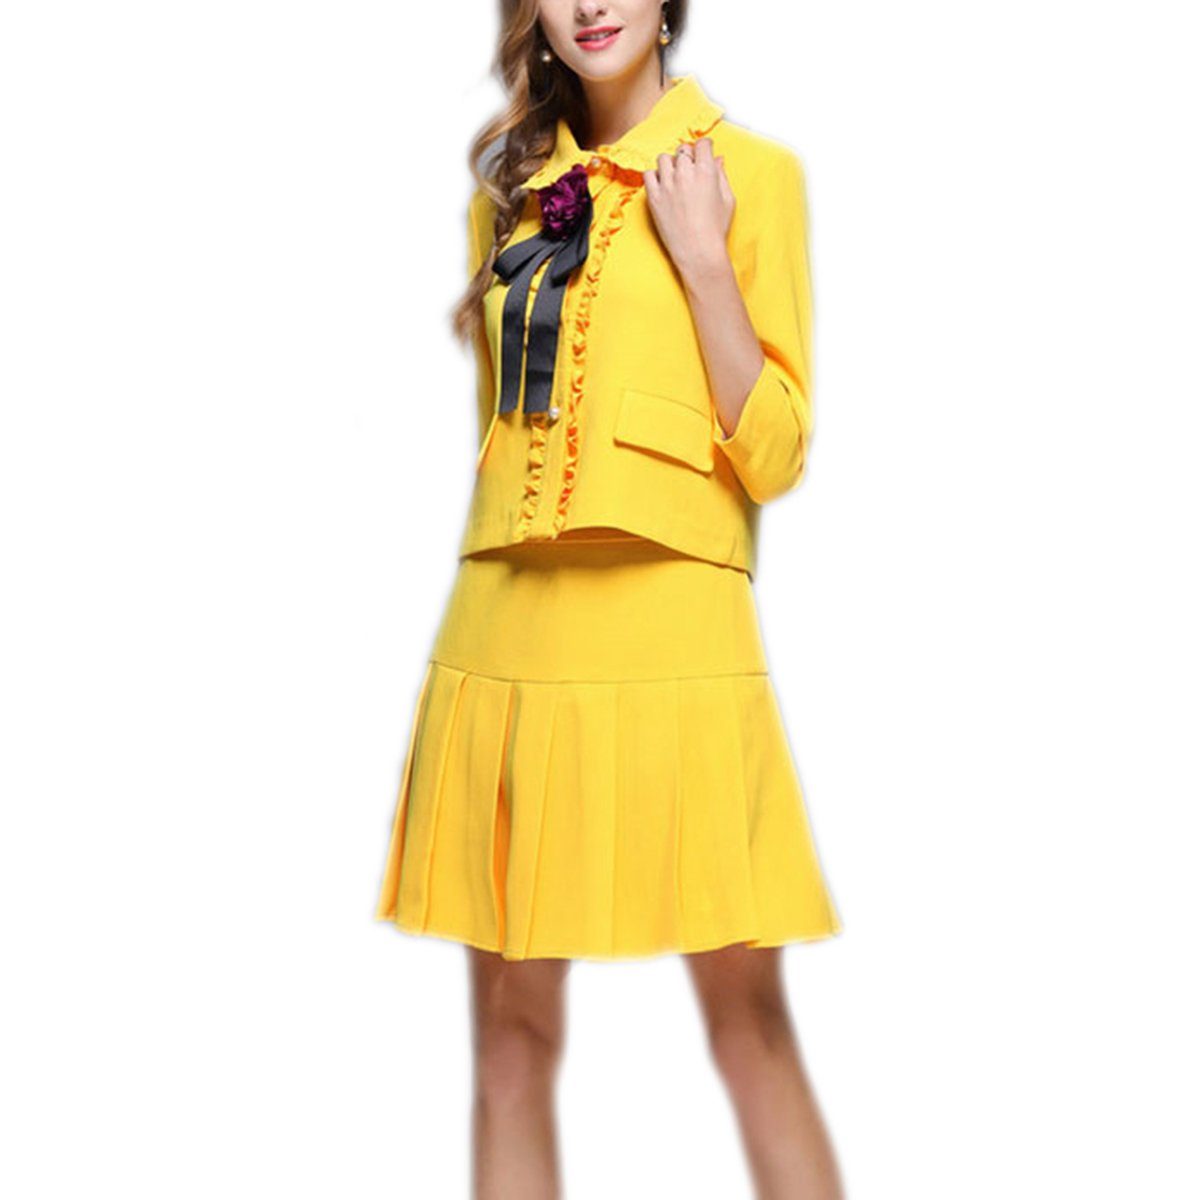 Weing Women's Sets Rose Appliques Short Jacket + Yellow Skirt Suit Gold XL by Weing